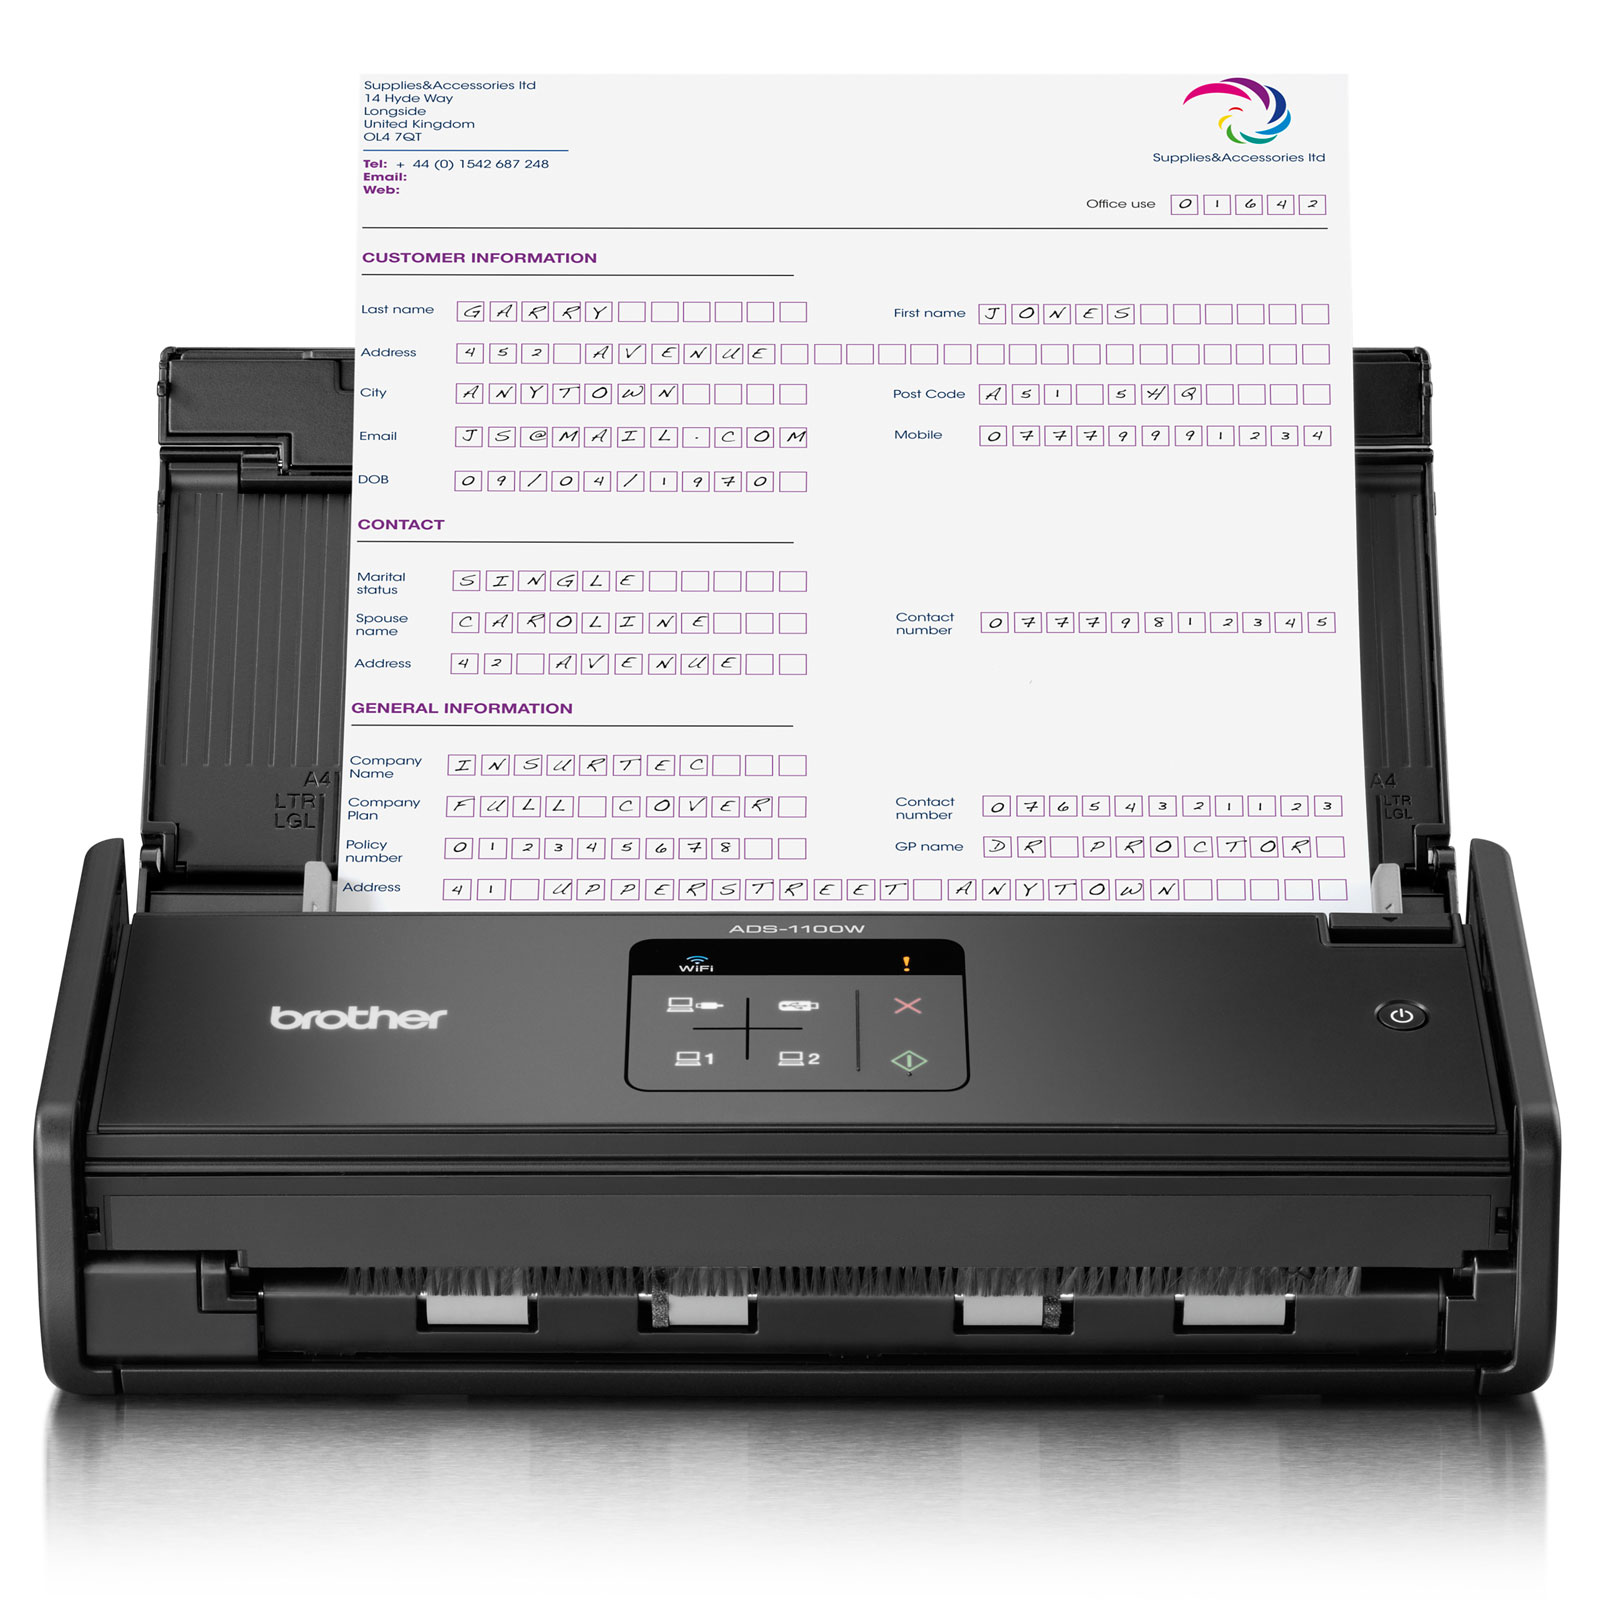 Scanner Brother ADS-1100W - A4 - Recto Verso